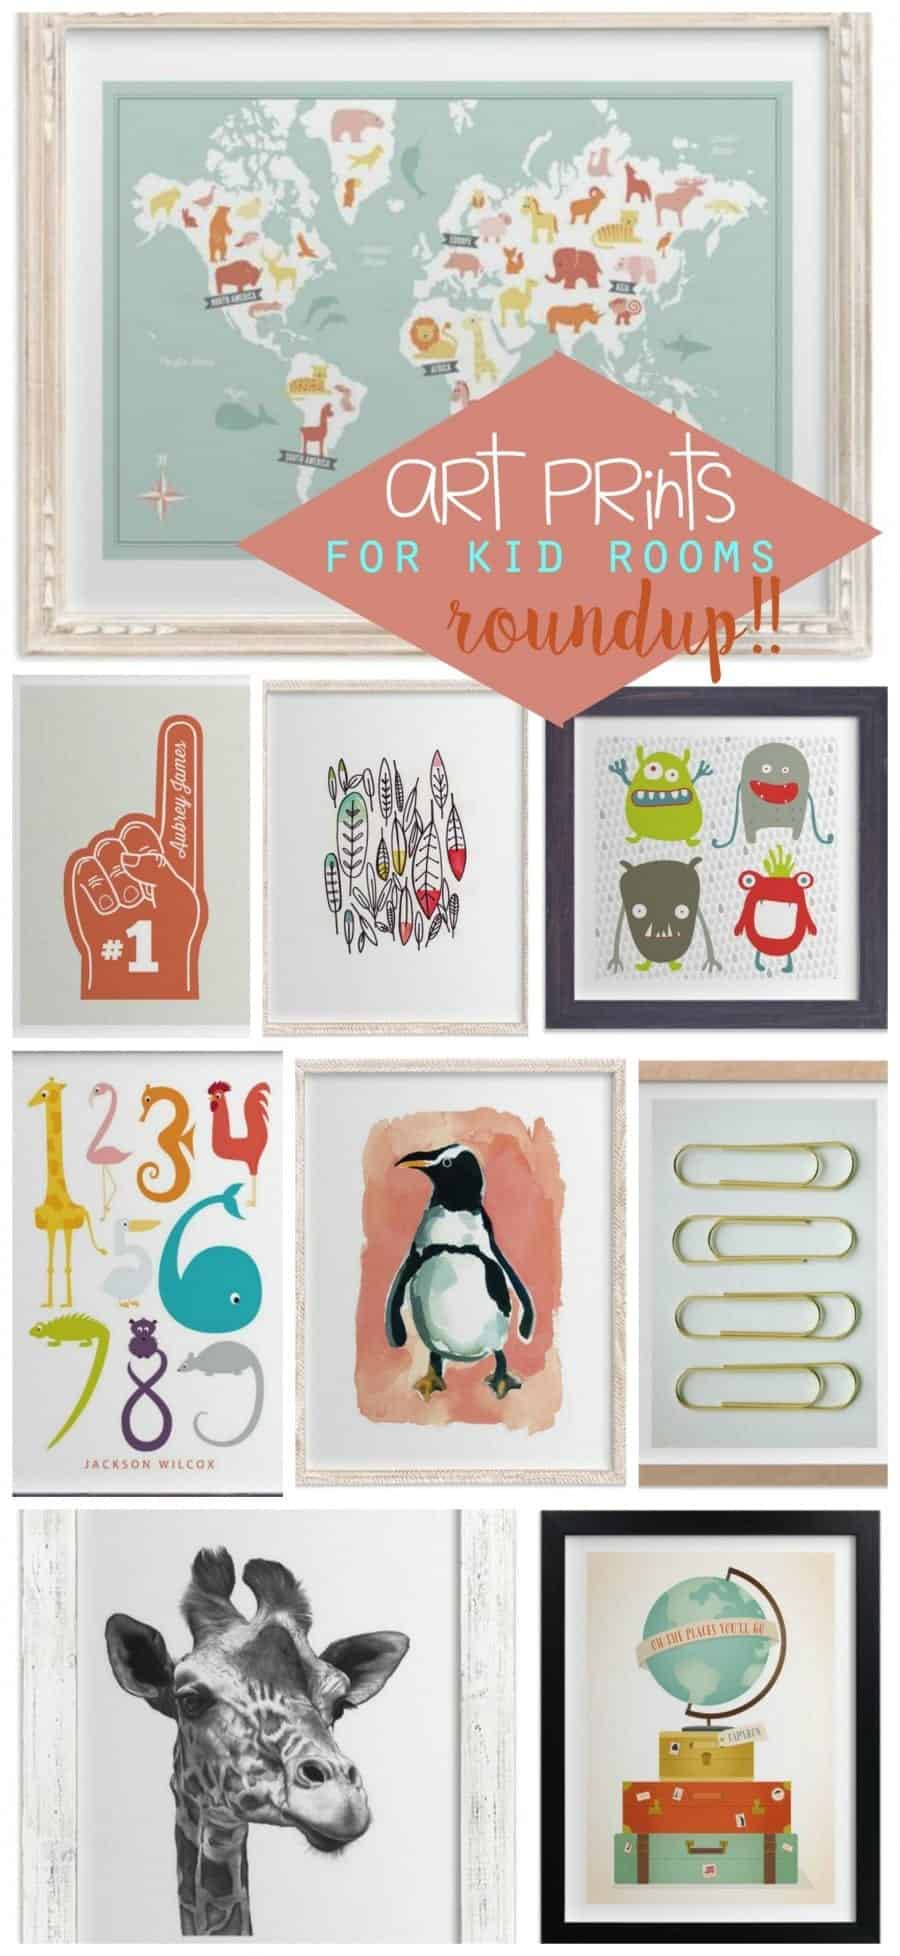 over-20-of-my-favorite-art-prints-for-kid-rooms--900x1956